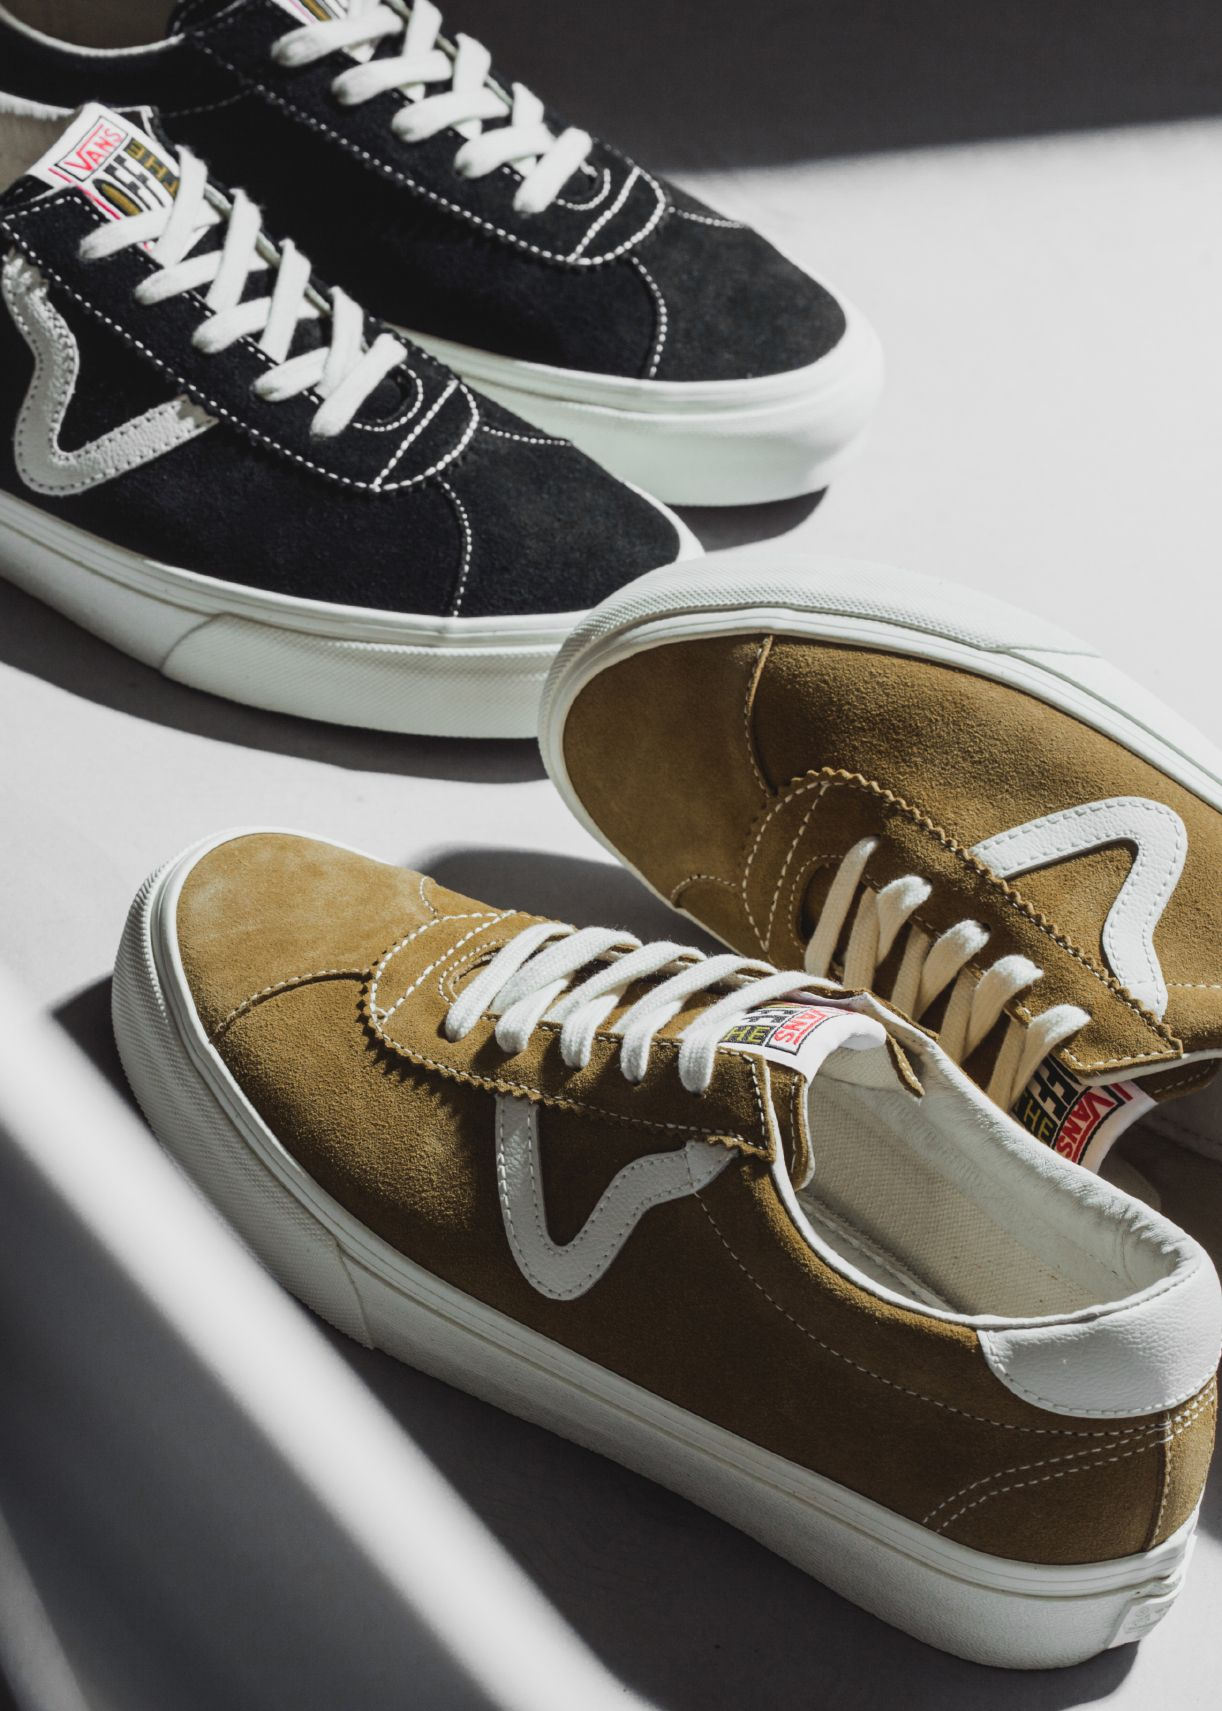 The Vans Epoch Sport Is the Brand's Newest Old Sneaker | GQ